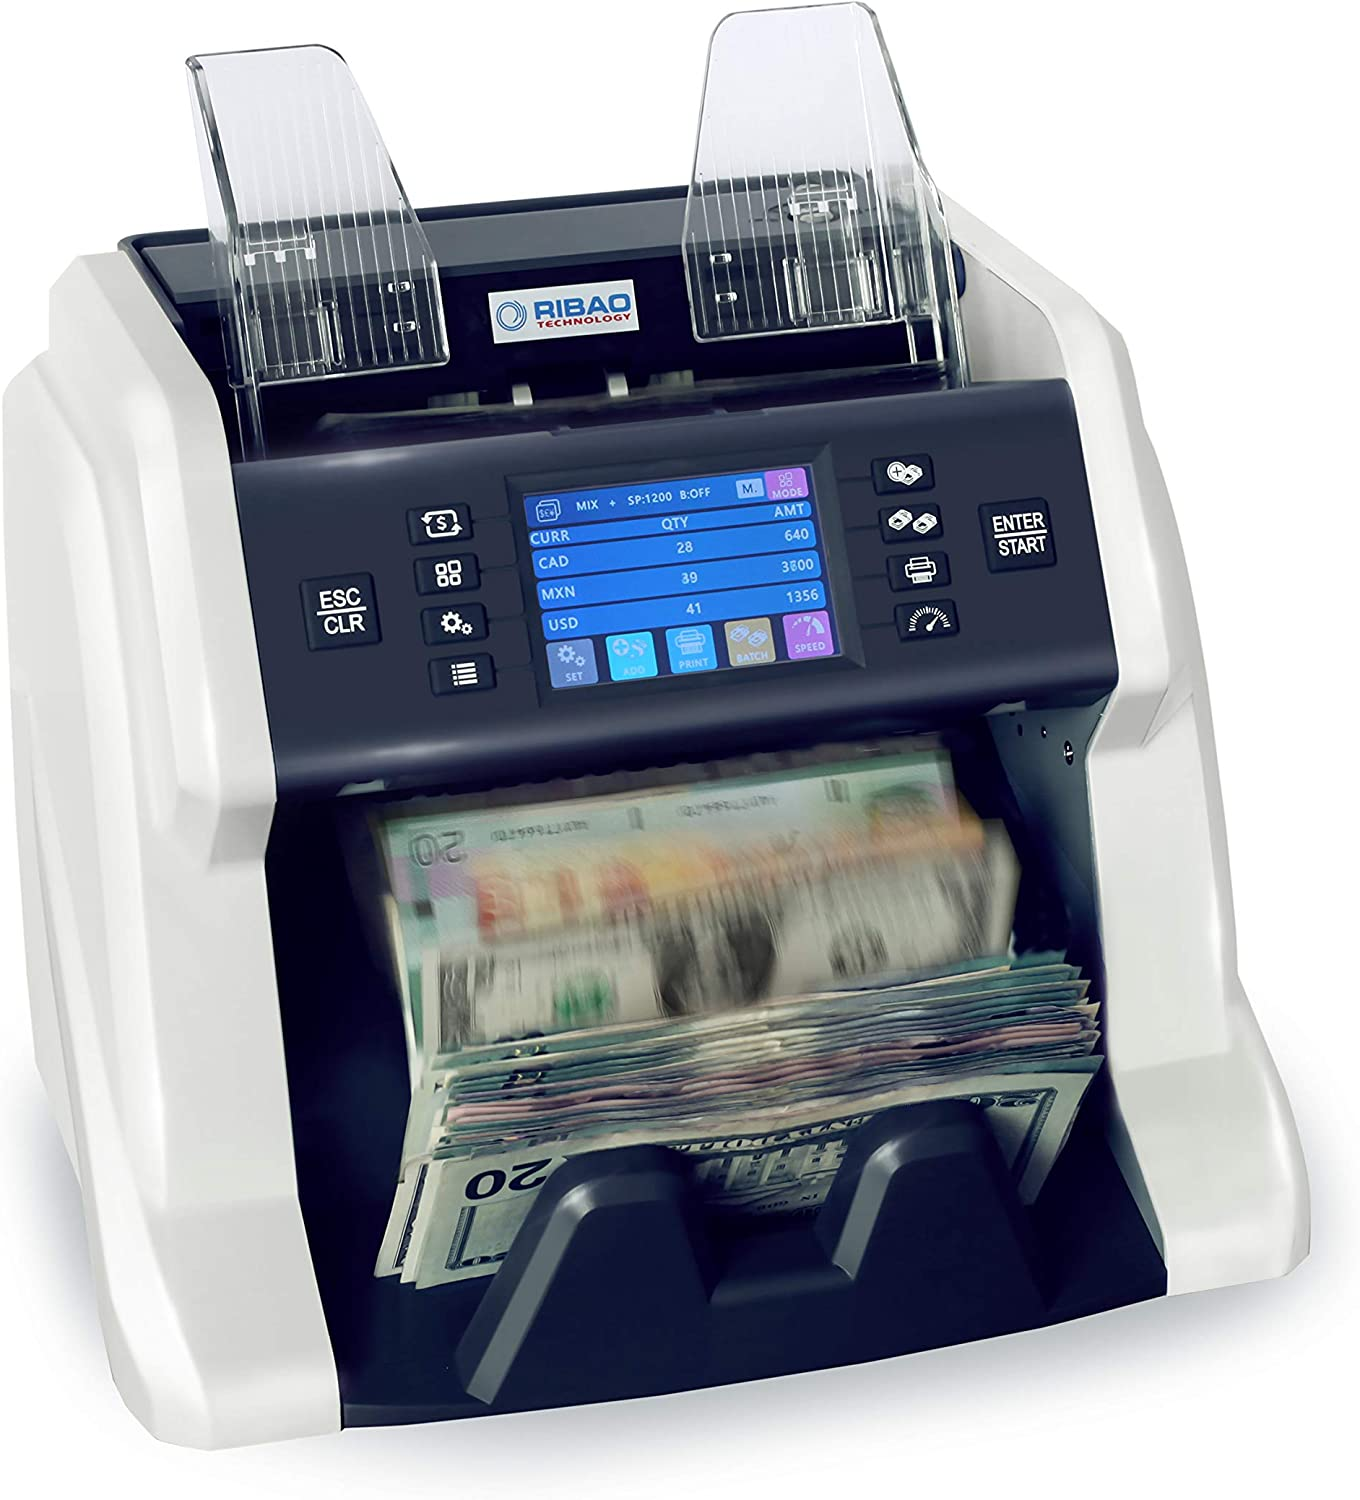 Ribao BC-55 Mixed Denomination Bill Counter UV/MG/MT/IR 2 CIS Image Sensors Counterfeit Detection Money Counter and Sorter with Currency Serial Number Recognition, Two-Year After Service 61WZgoSDRALSL1500_